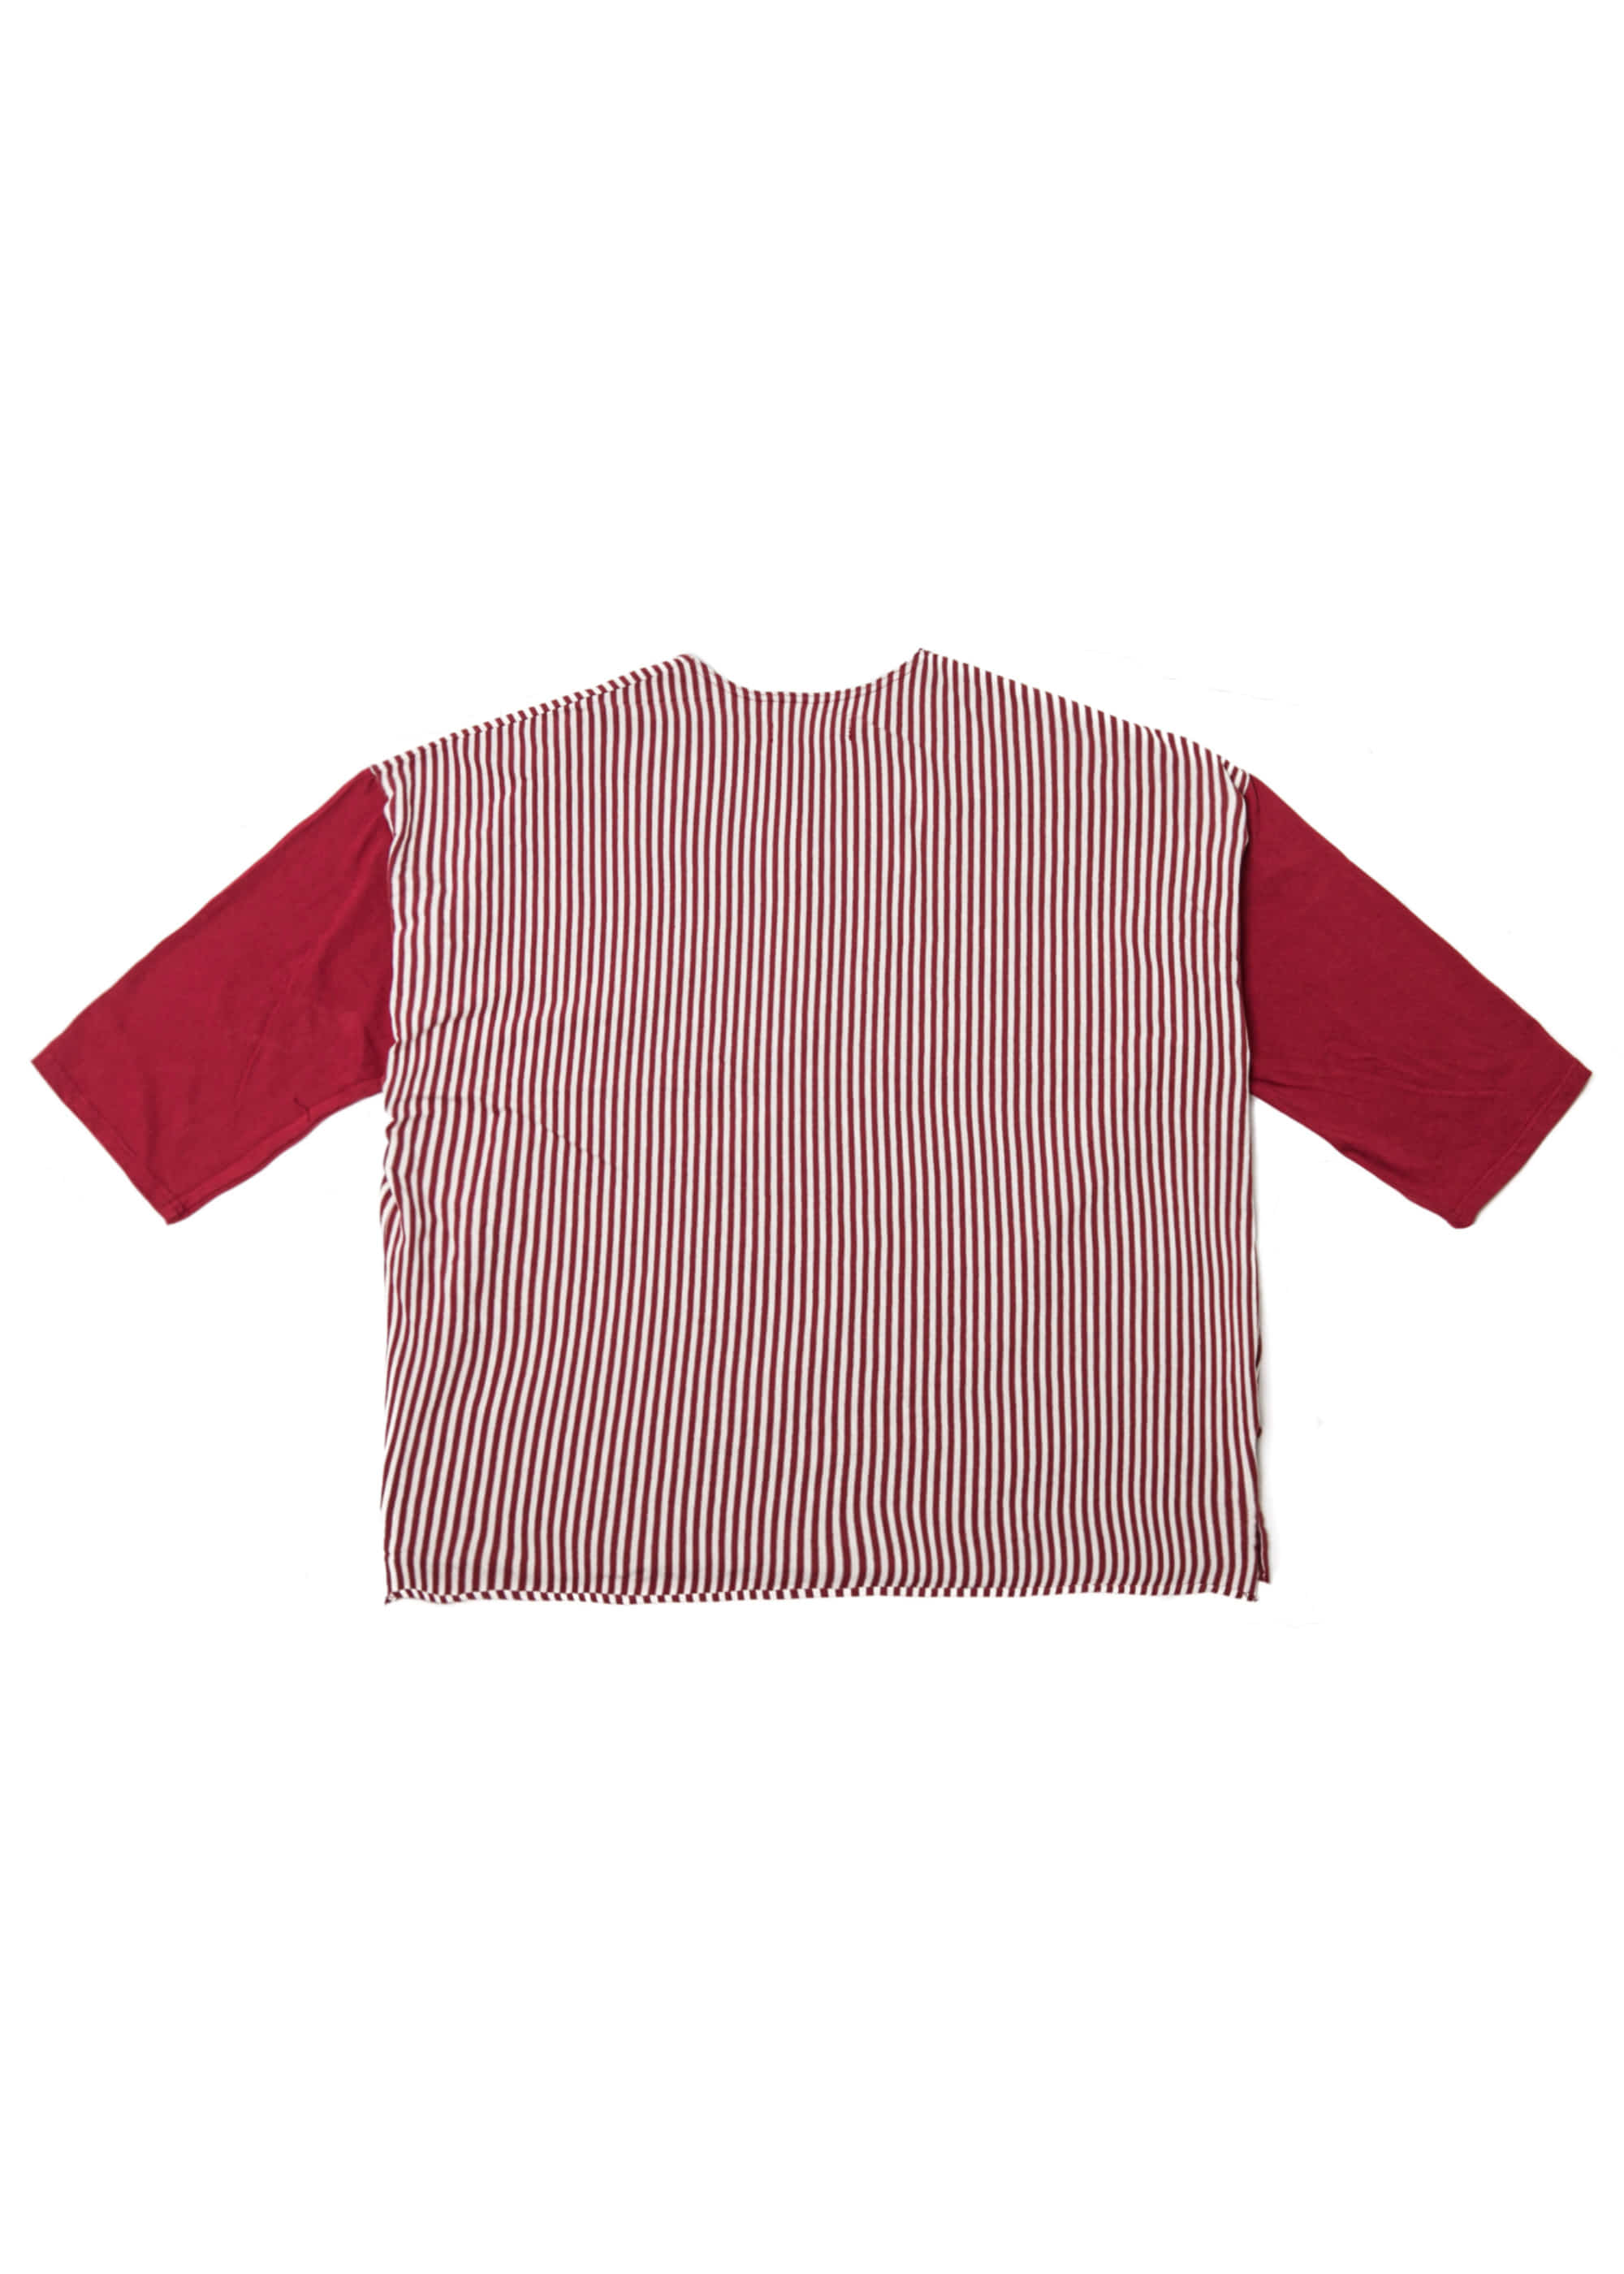 Stripe Henry Neck Over Tee - Red